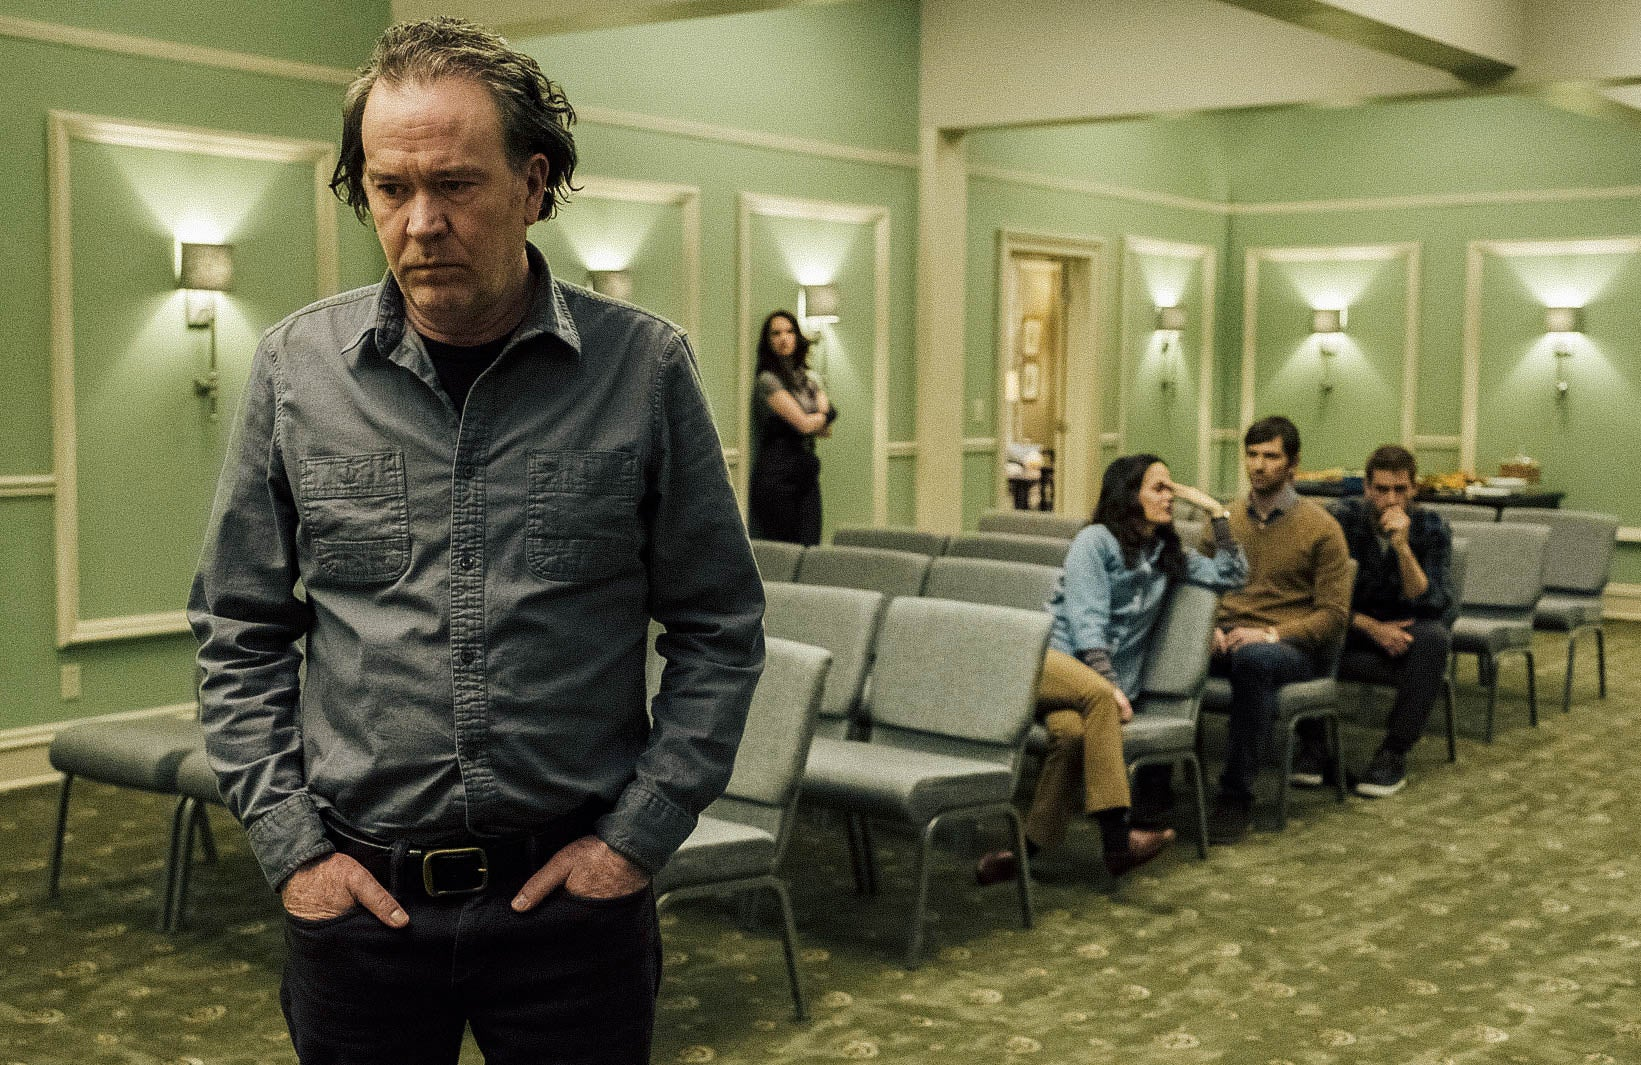 Timothy Hutton stands apart from the rest of his cast family in The Haunting of Hill House.